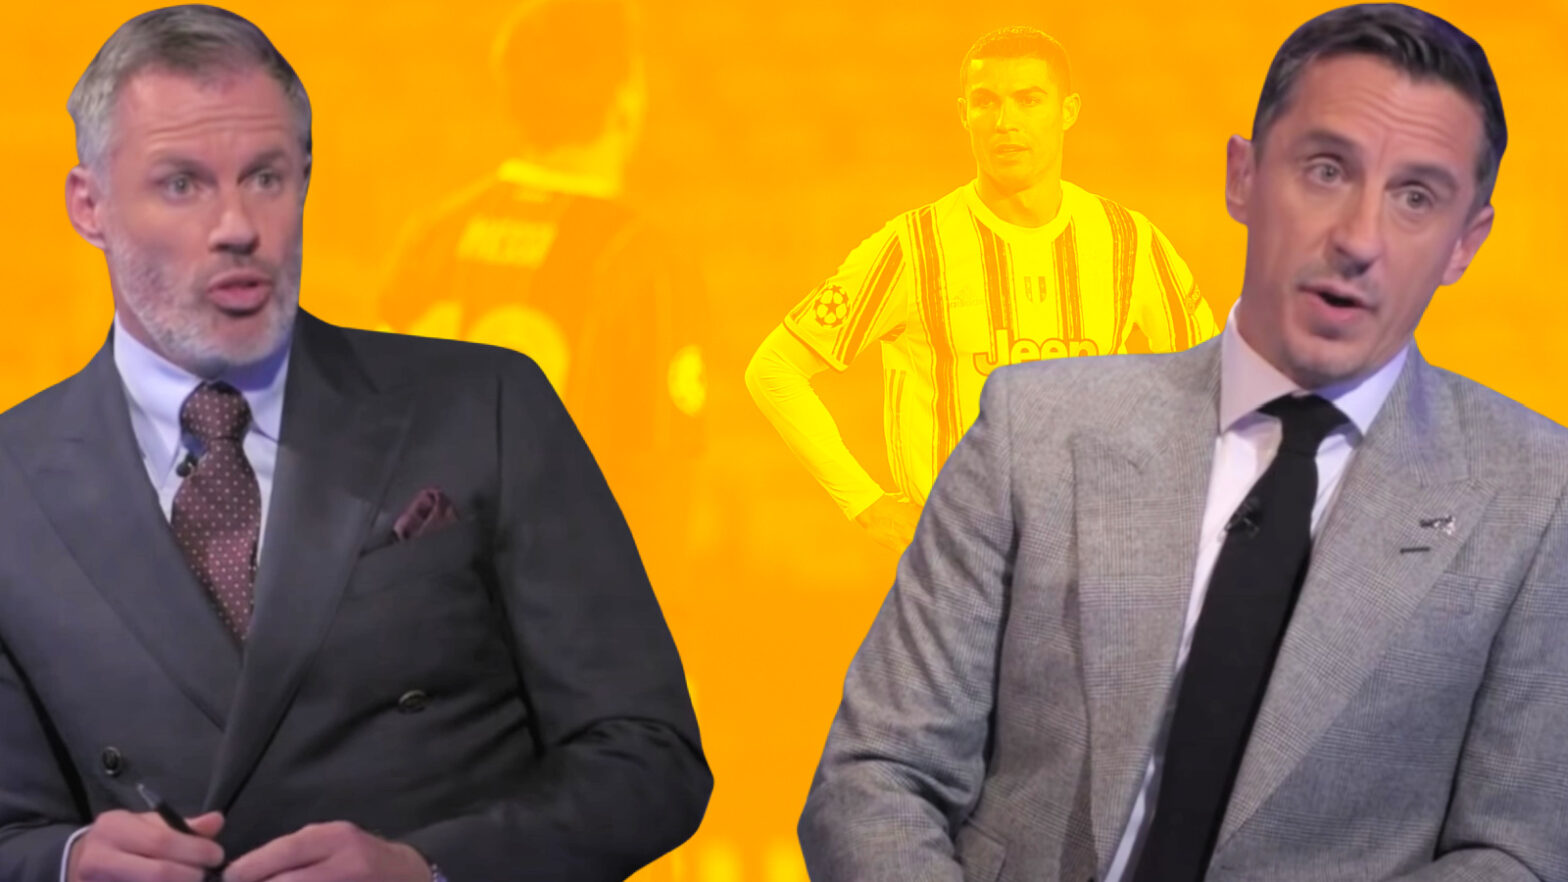 Gary Neville tries to say Ronaldo is greater than Messi but gets roasted by Jamie Carragher